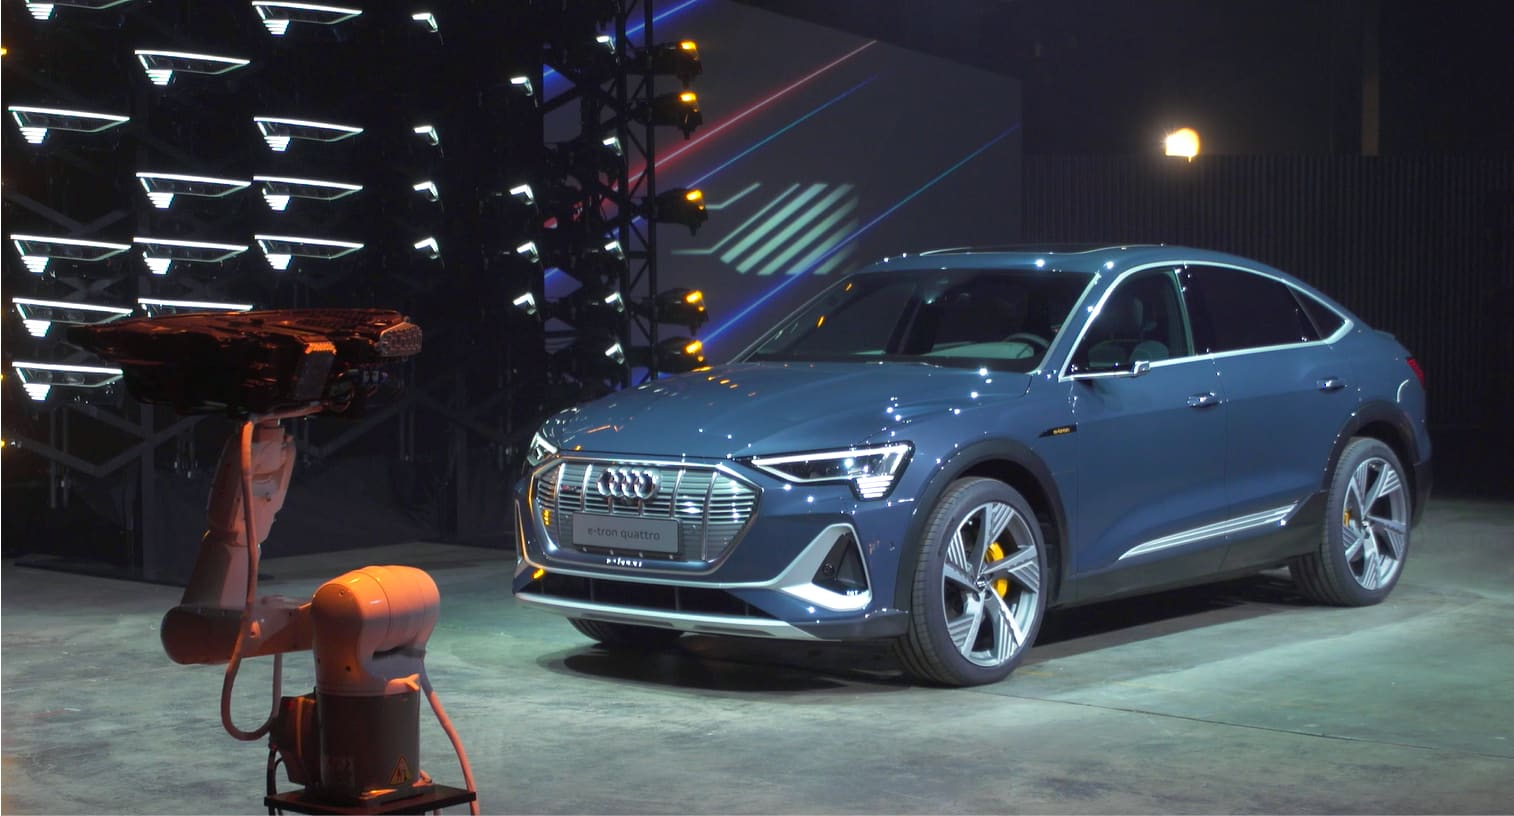 Audi unveils first all-electric Sportback with tech-savvy features illegal in US